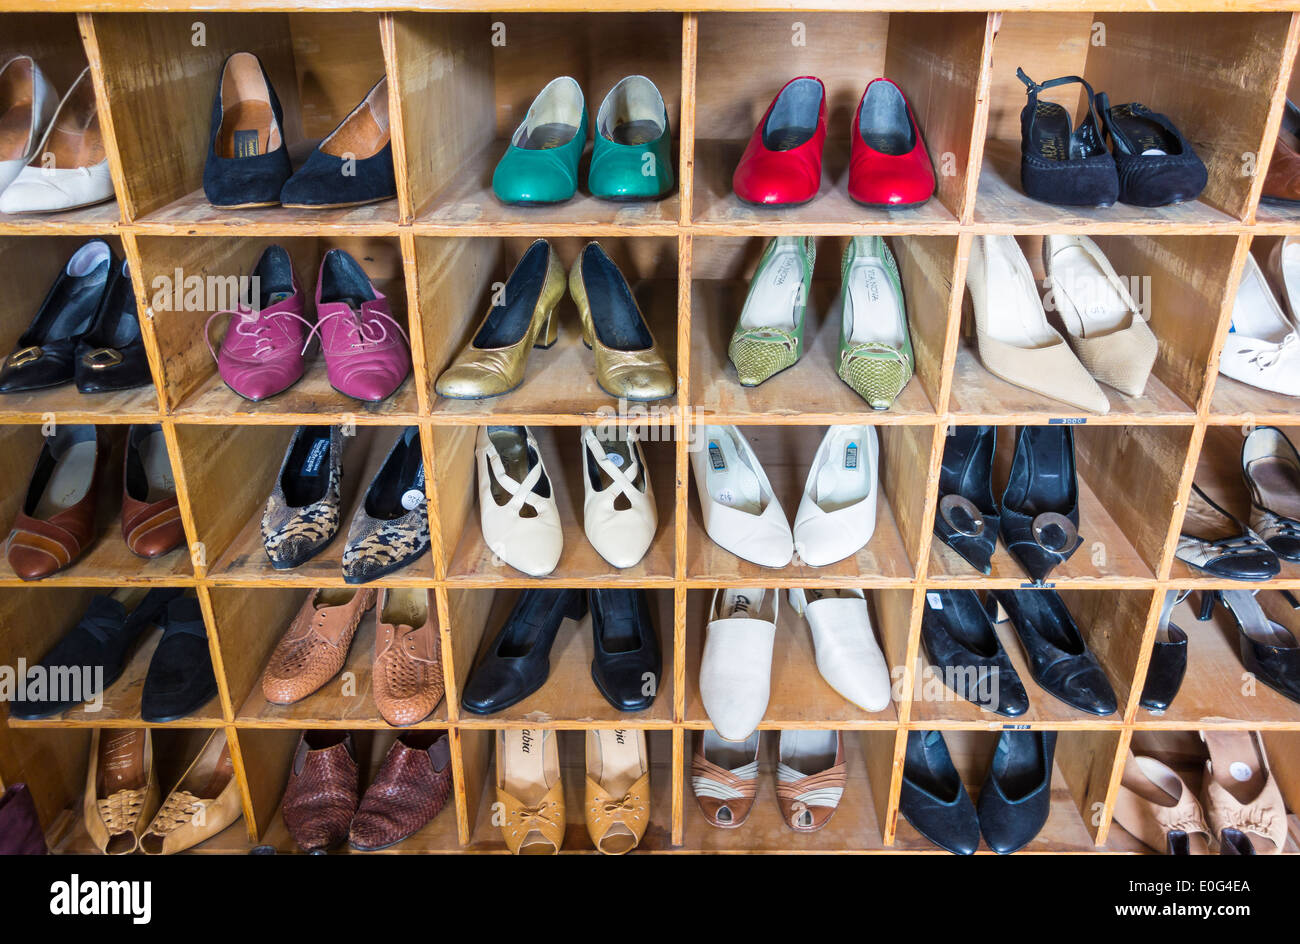 Vintage shoes shop display in a charity shop thrift consignment store Stock Photo